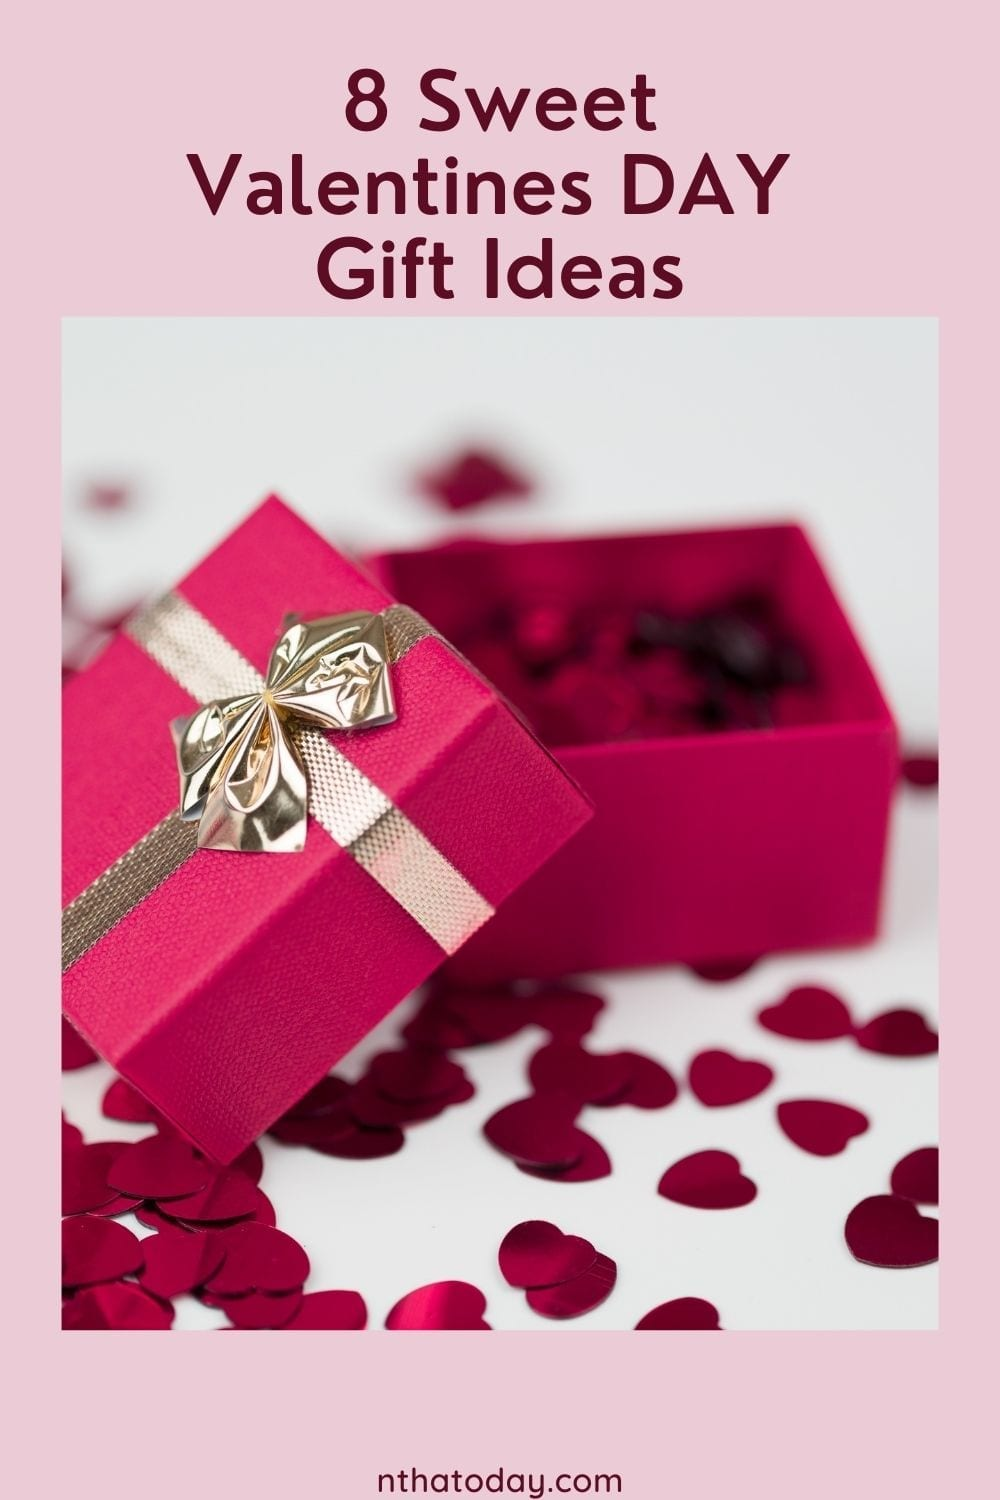 Red opened gift box with hearts